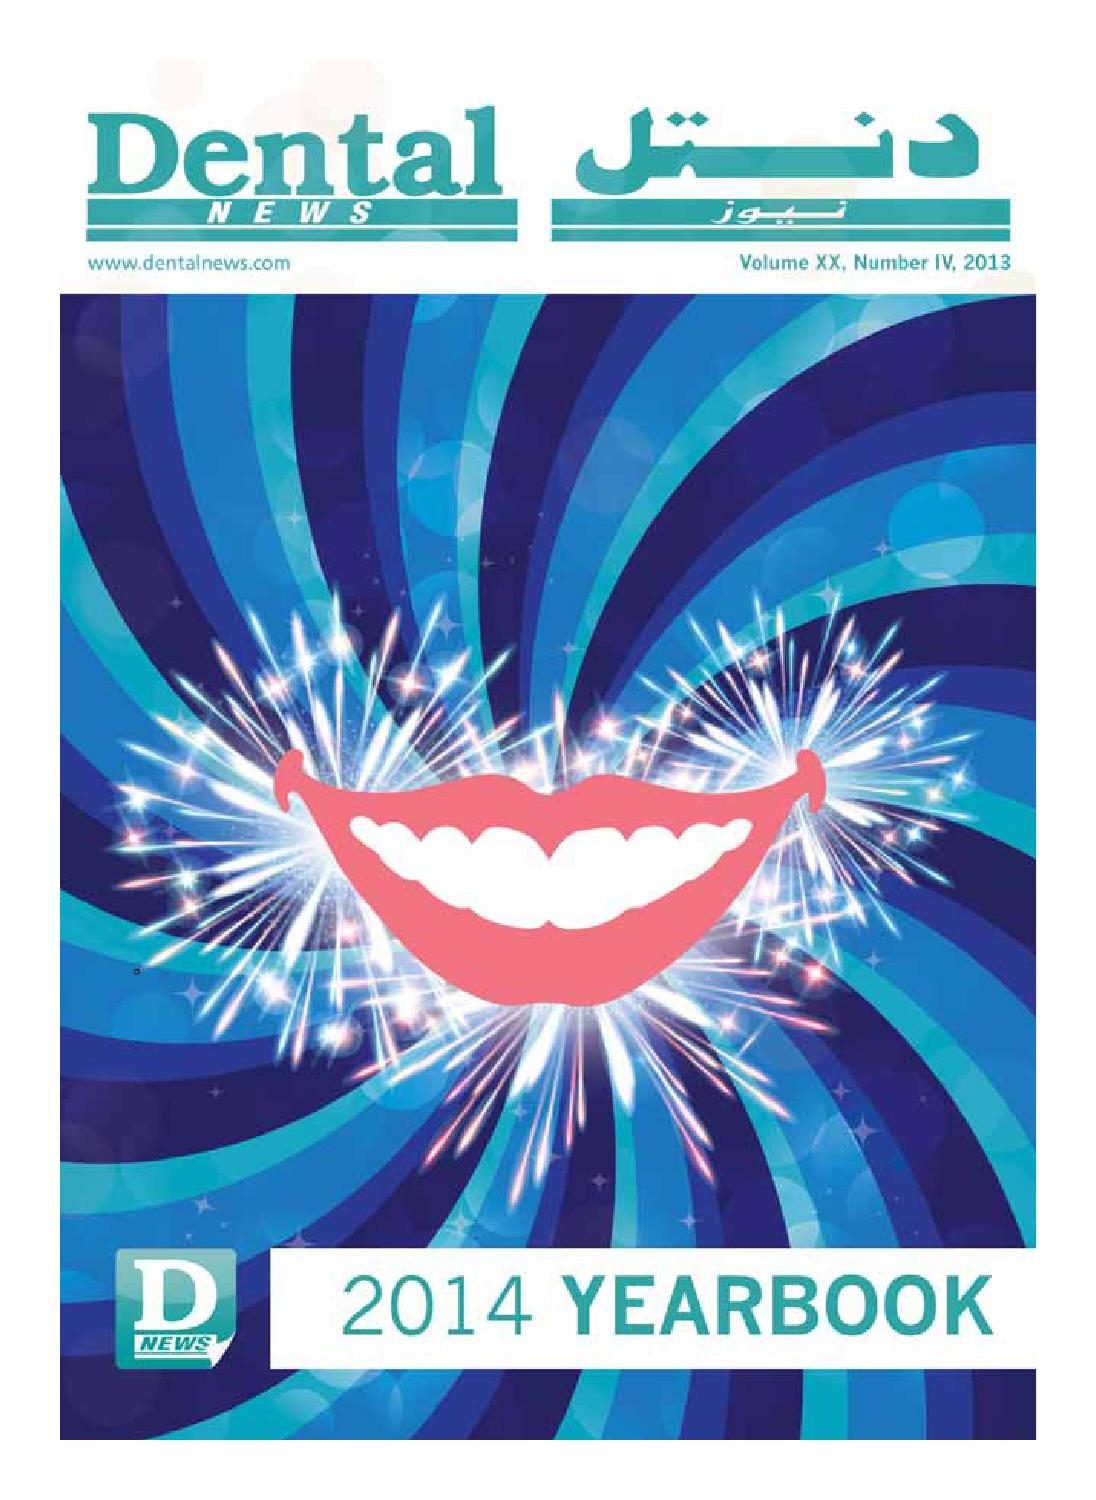 Dental News Yearbook 2014 by Dental News - issuu